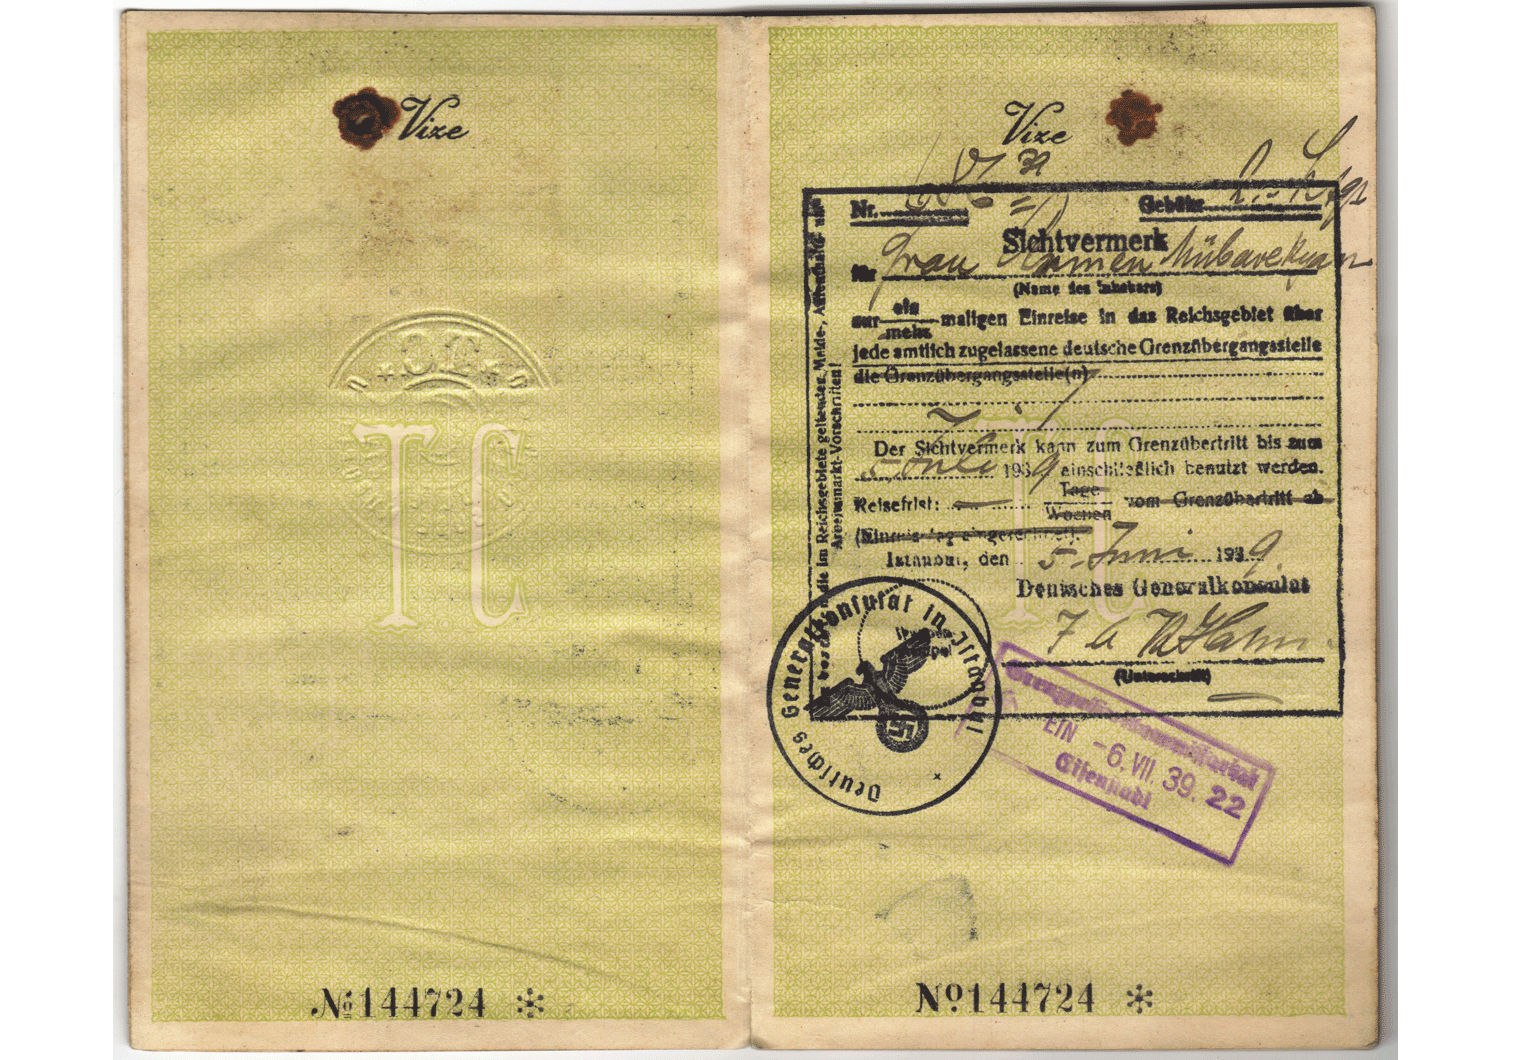 1939 German visa